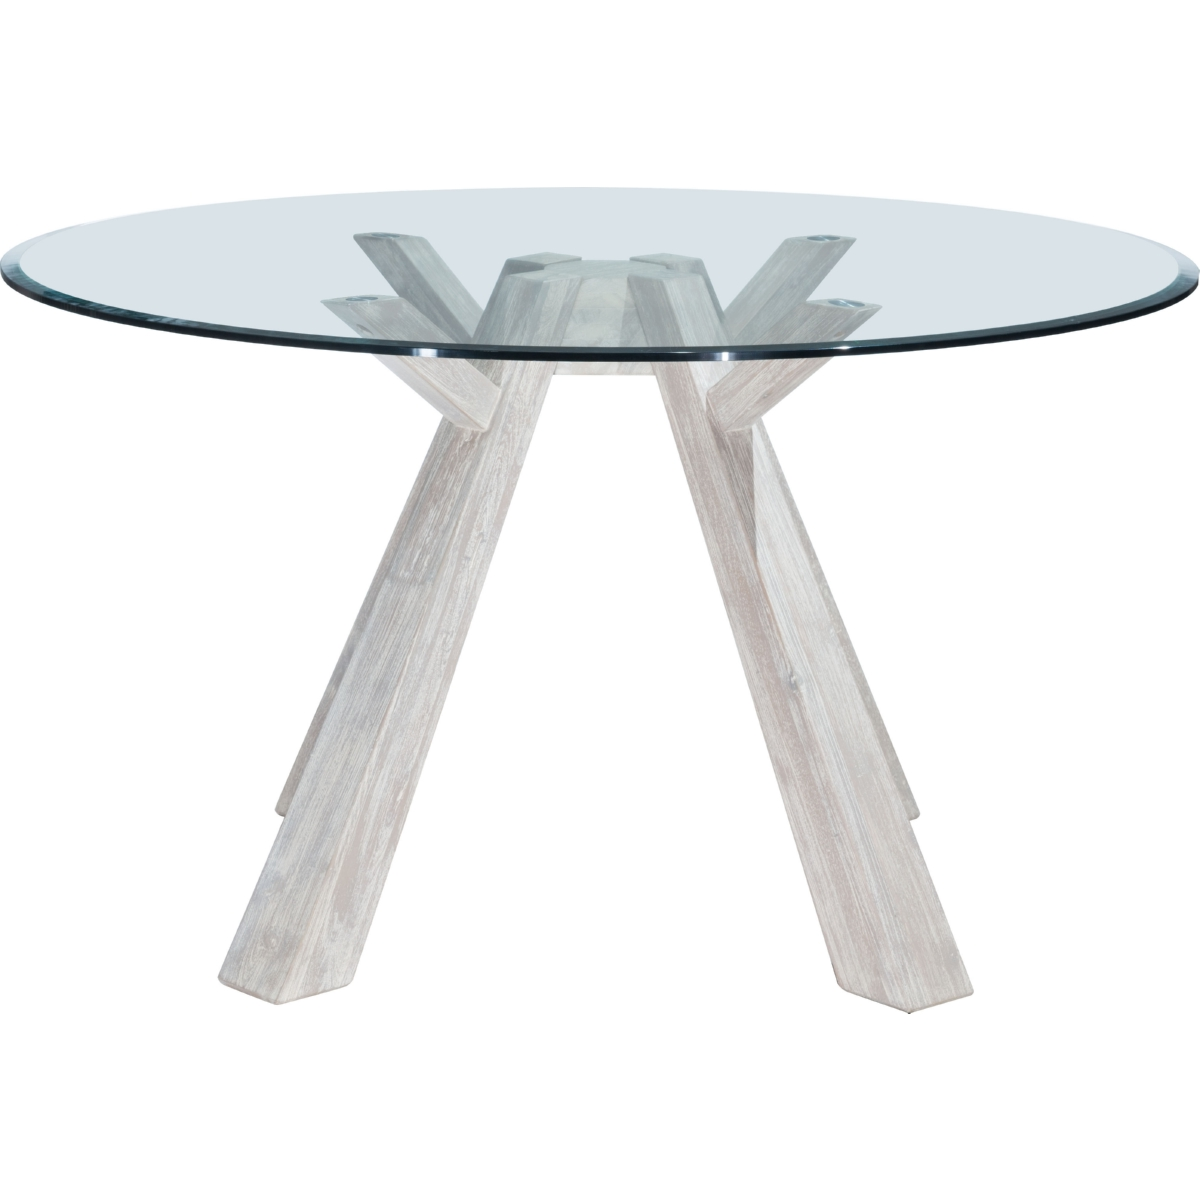 """Zuo Modern Beaumont 54"""" Round Dining Table in Sun Drenched"""